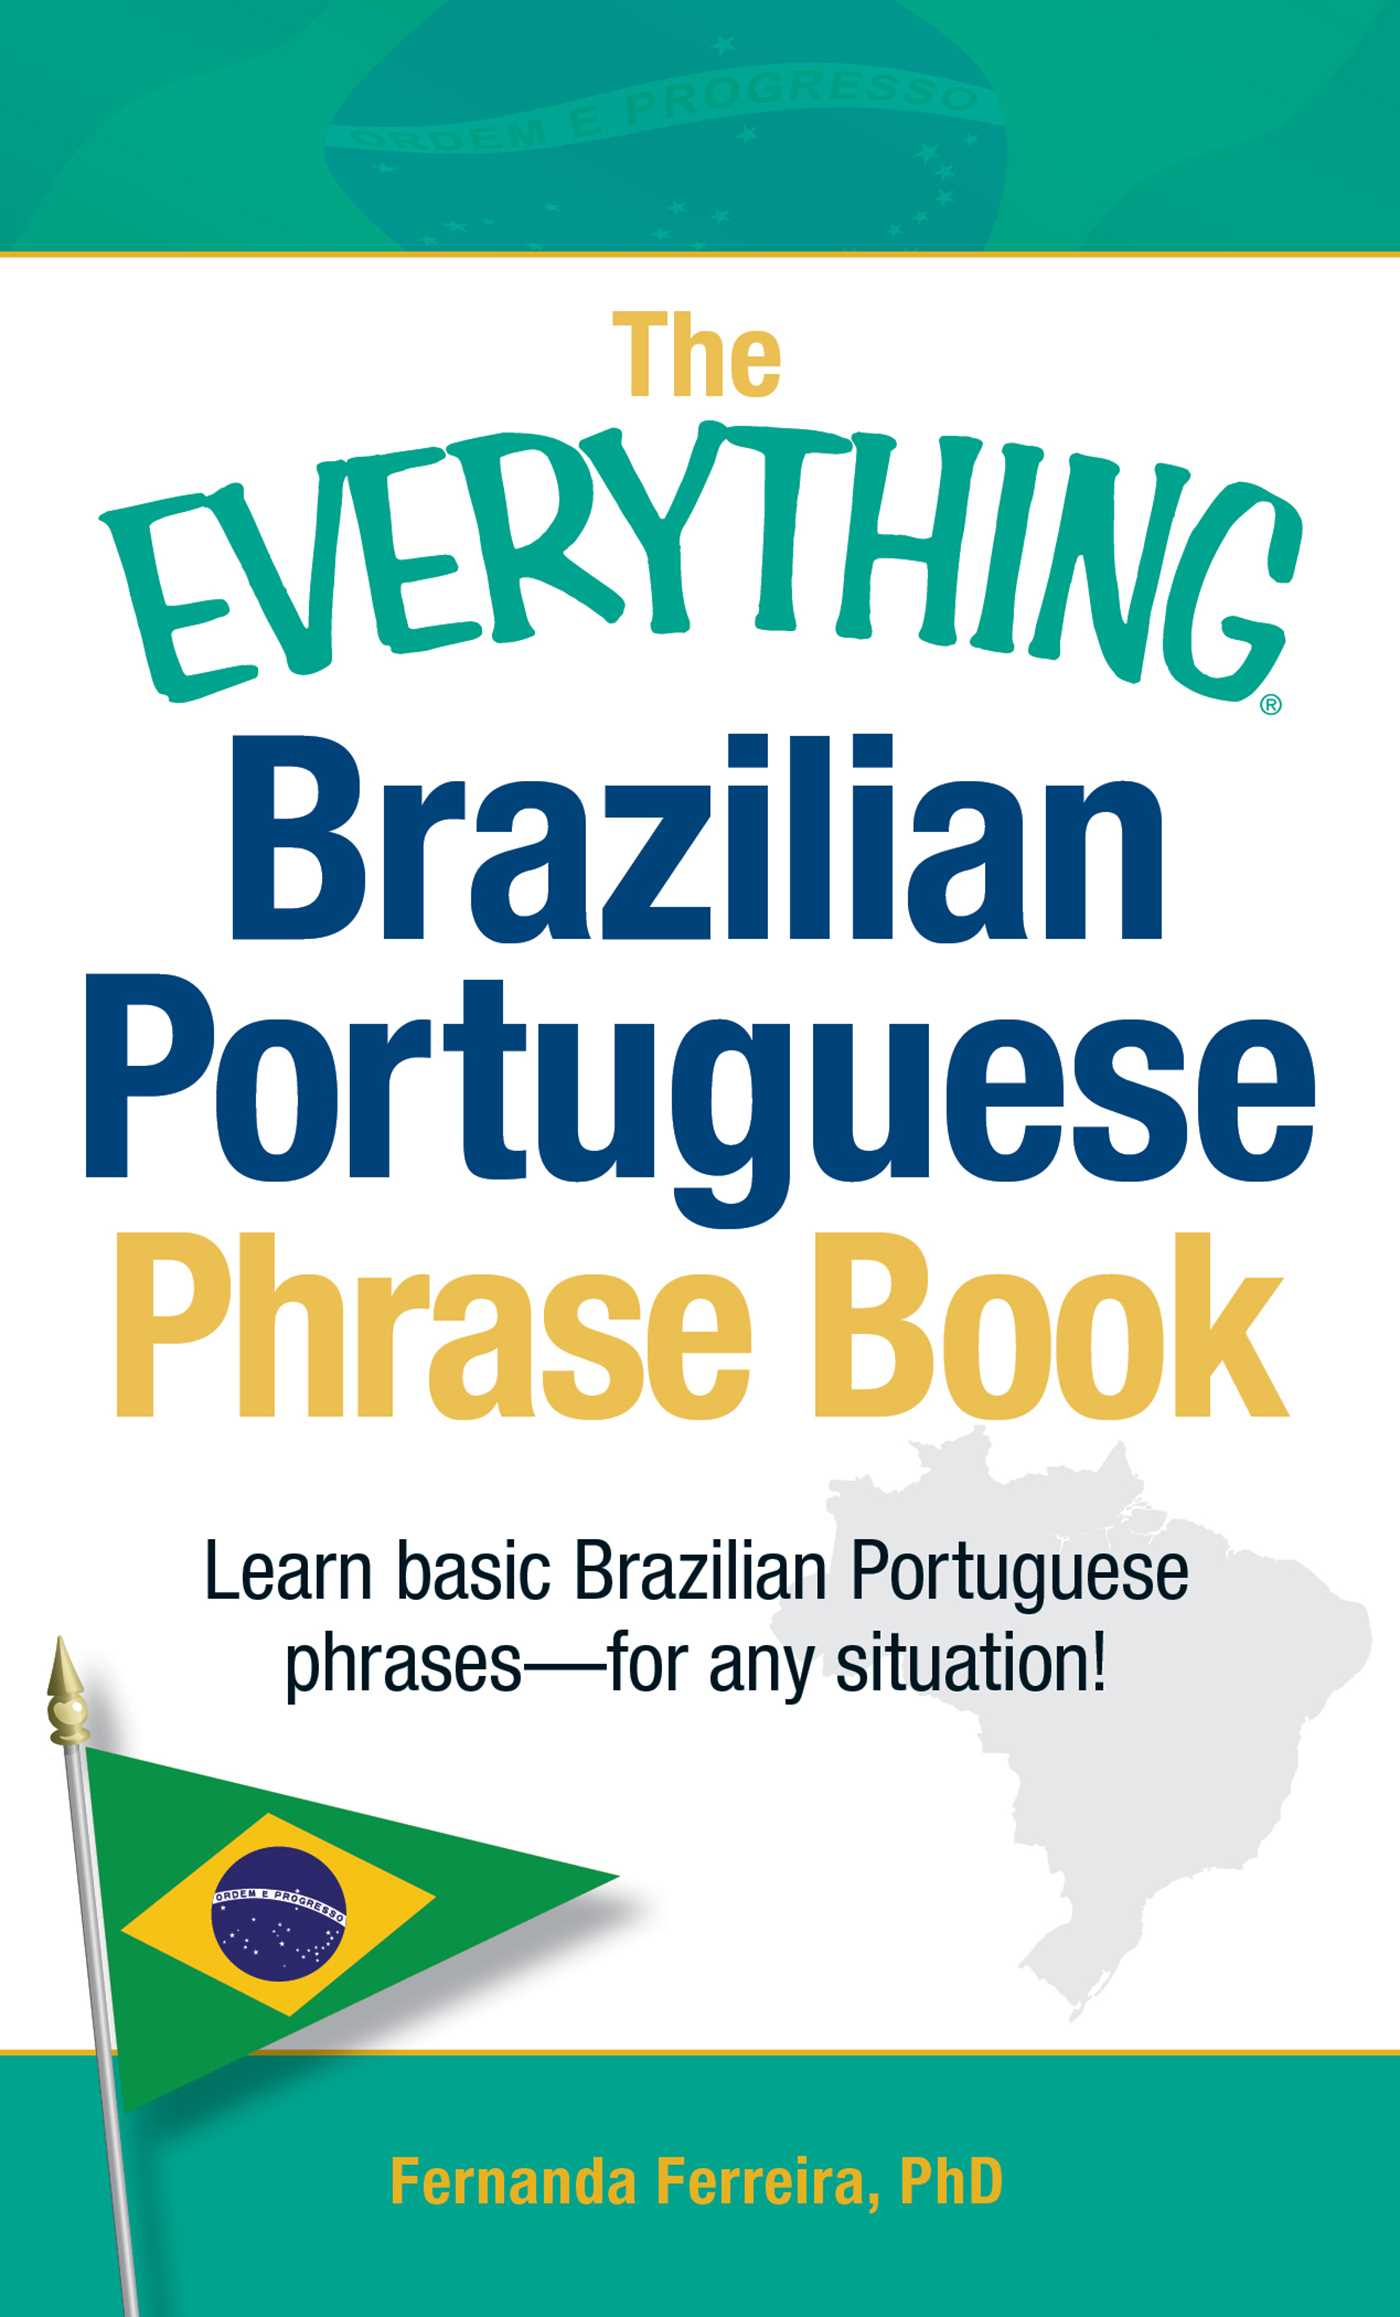 The everything brazilian portuguese phrase book 9781440555275 hr